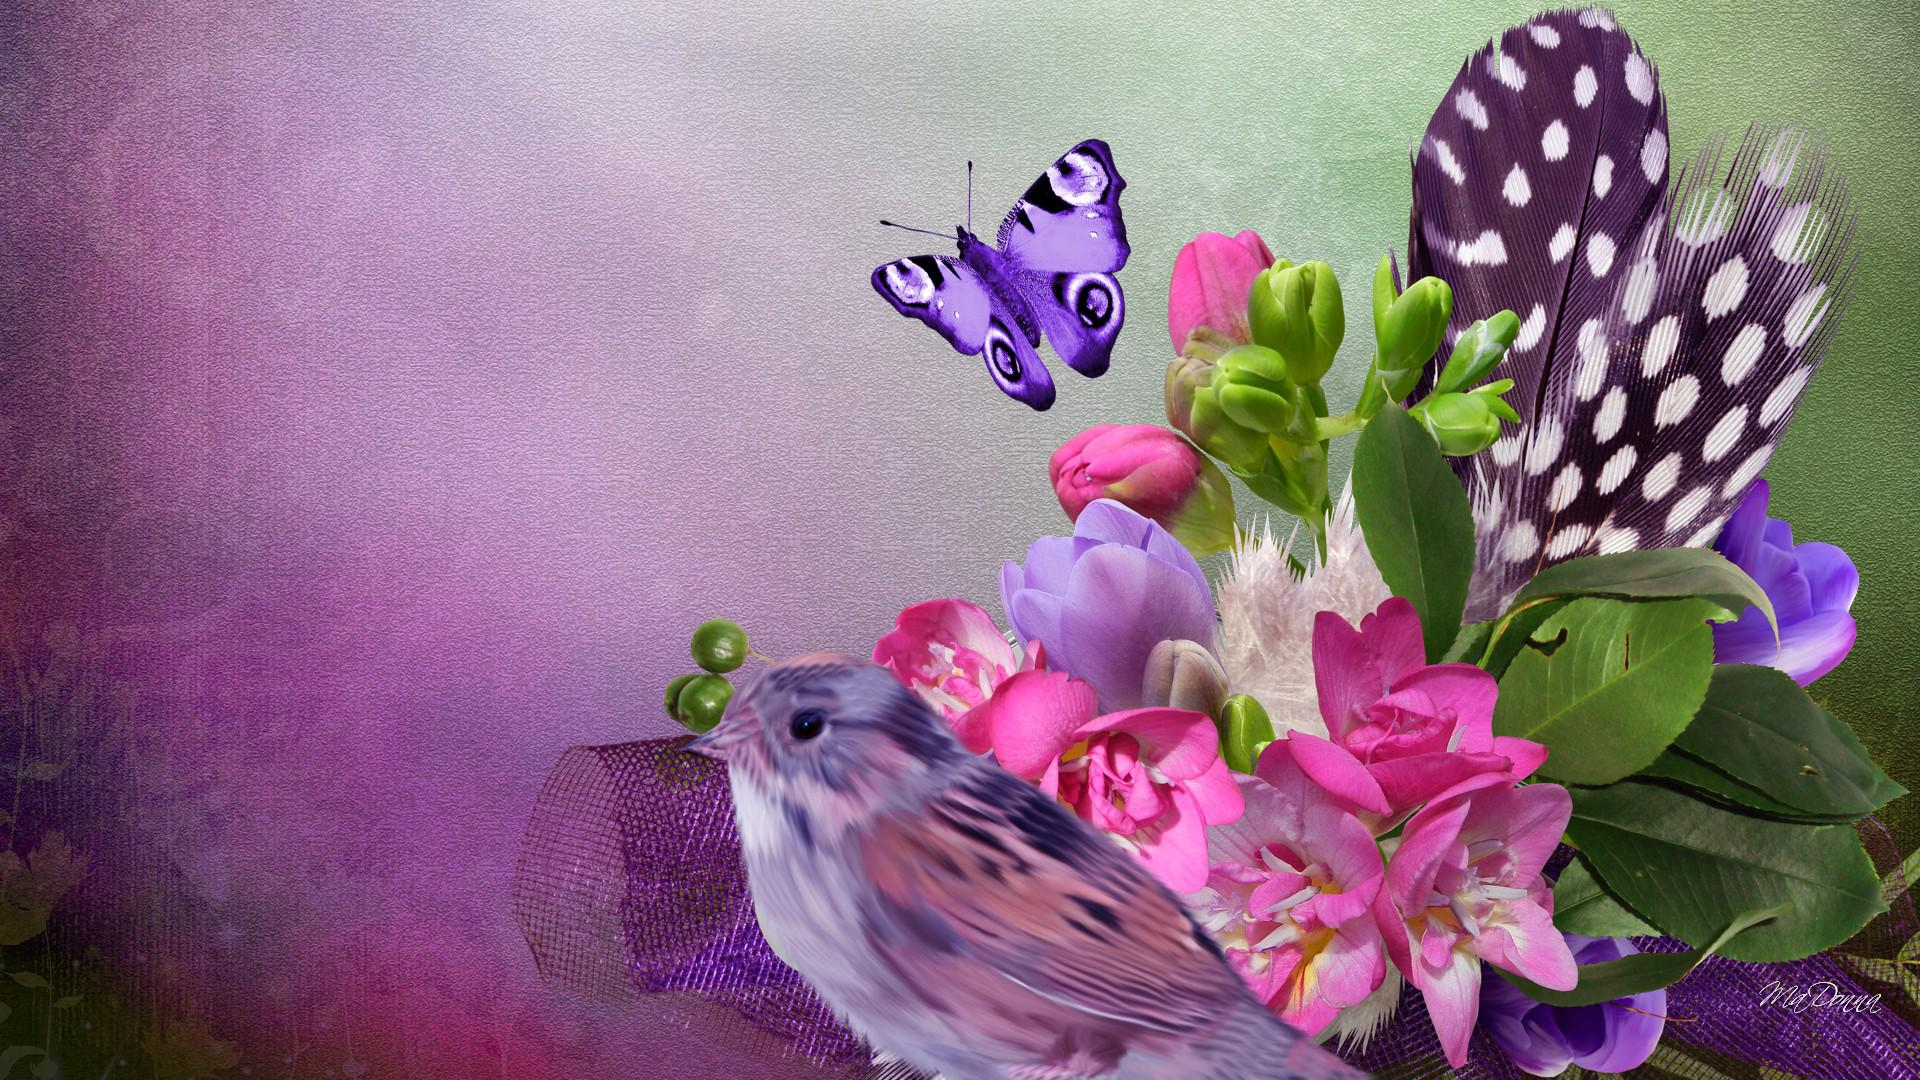 birds amp butterflies wallpaper wallpapersafari